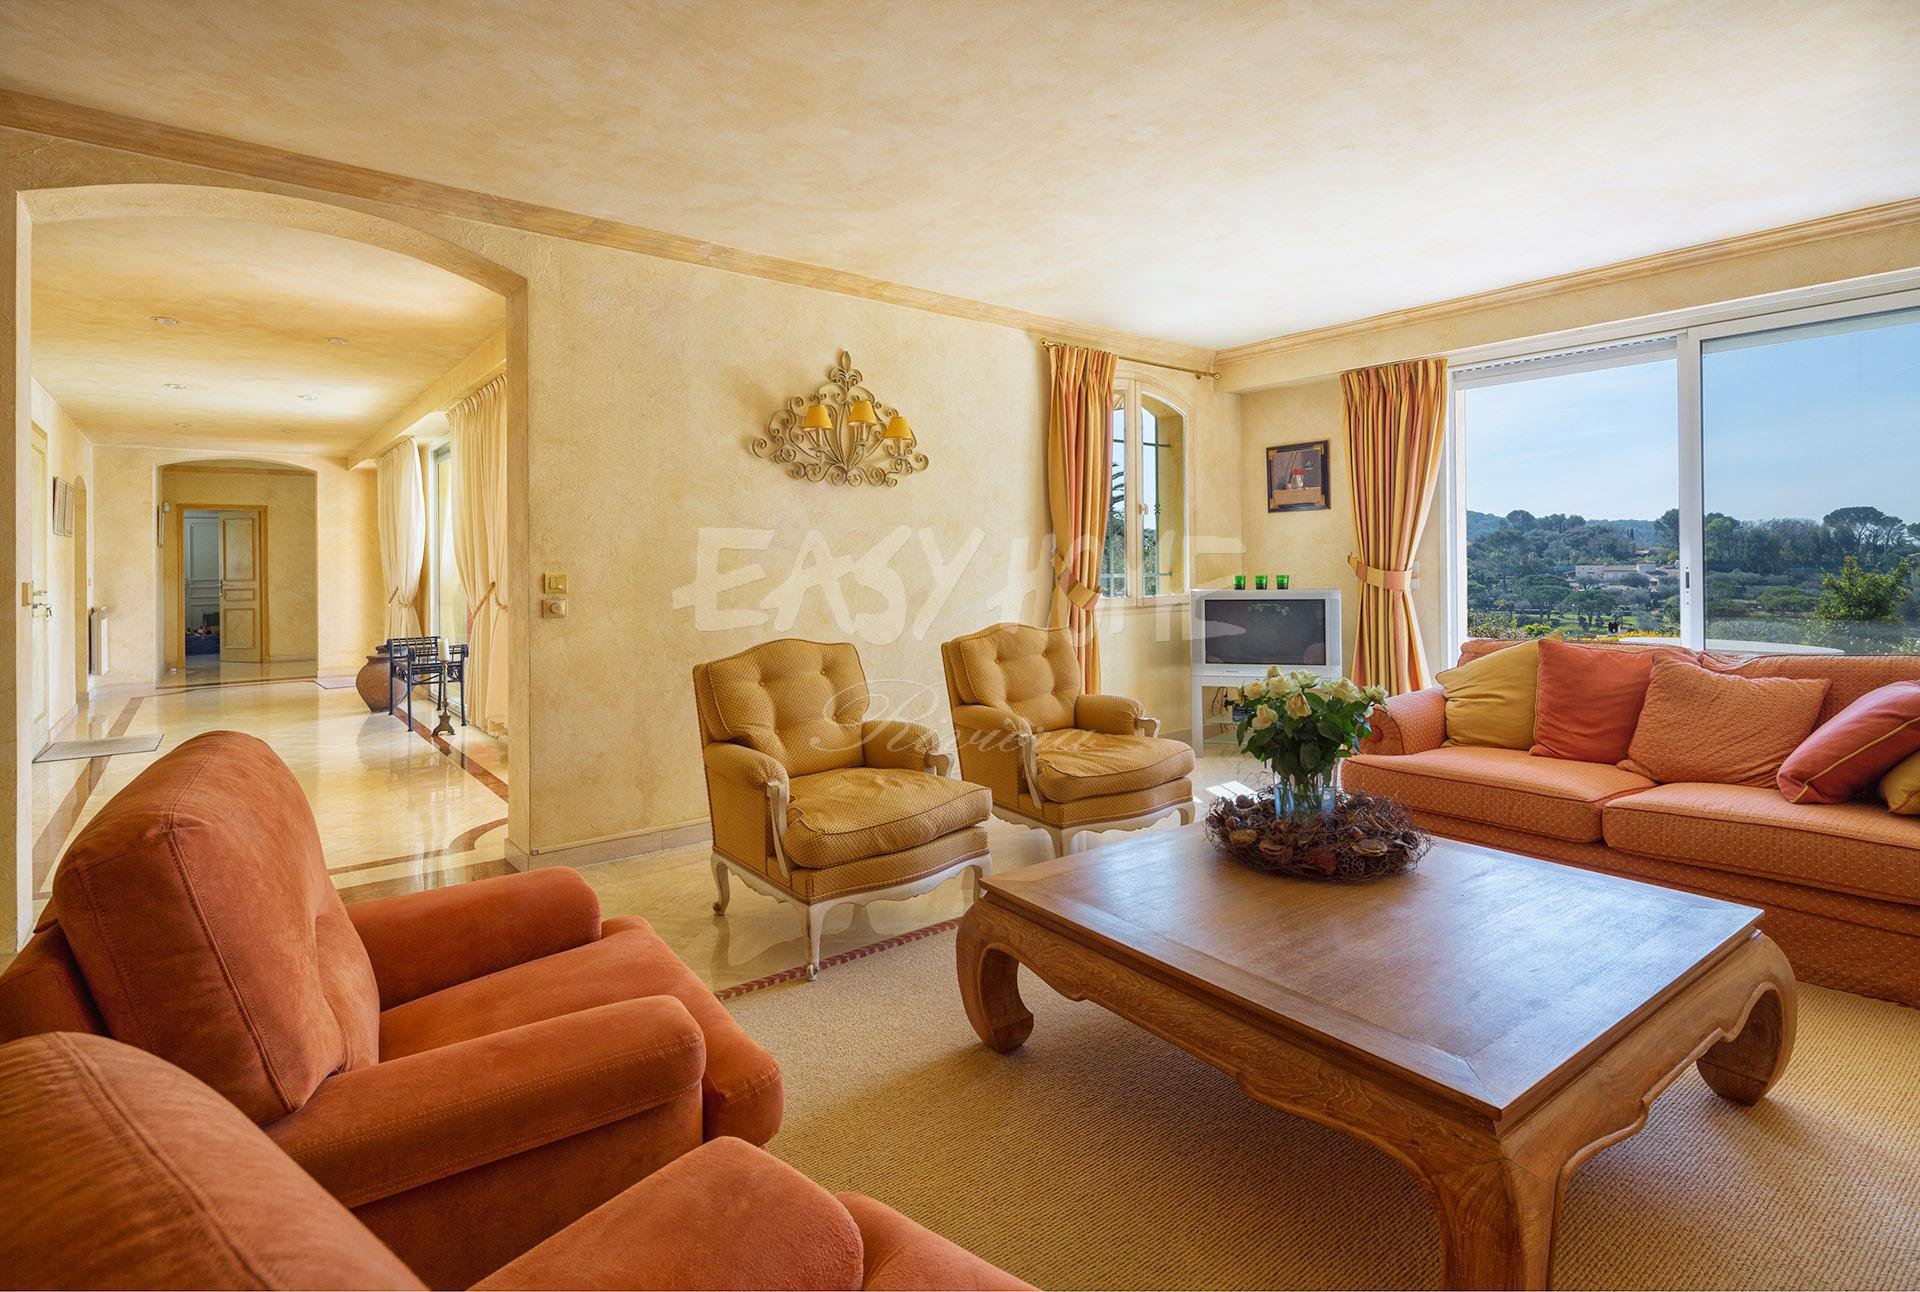 HOUSE FOR SALE IN MOUGINS IN A GATED DOMAIN NEXT TO GOLF